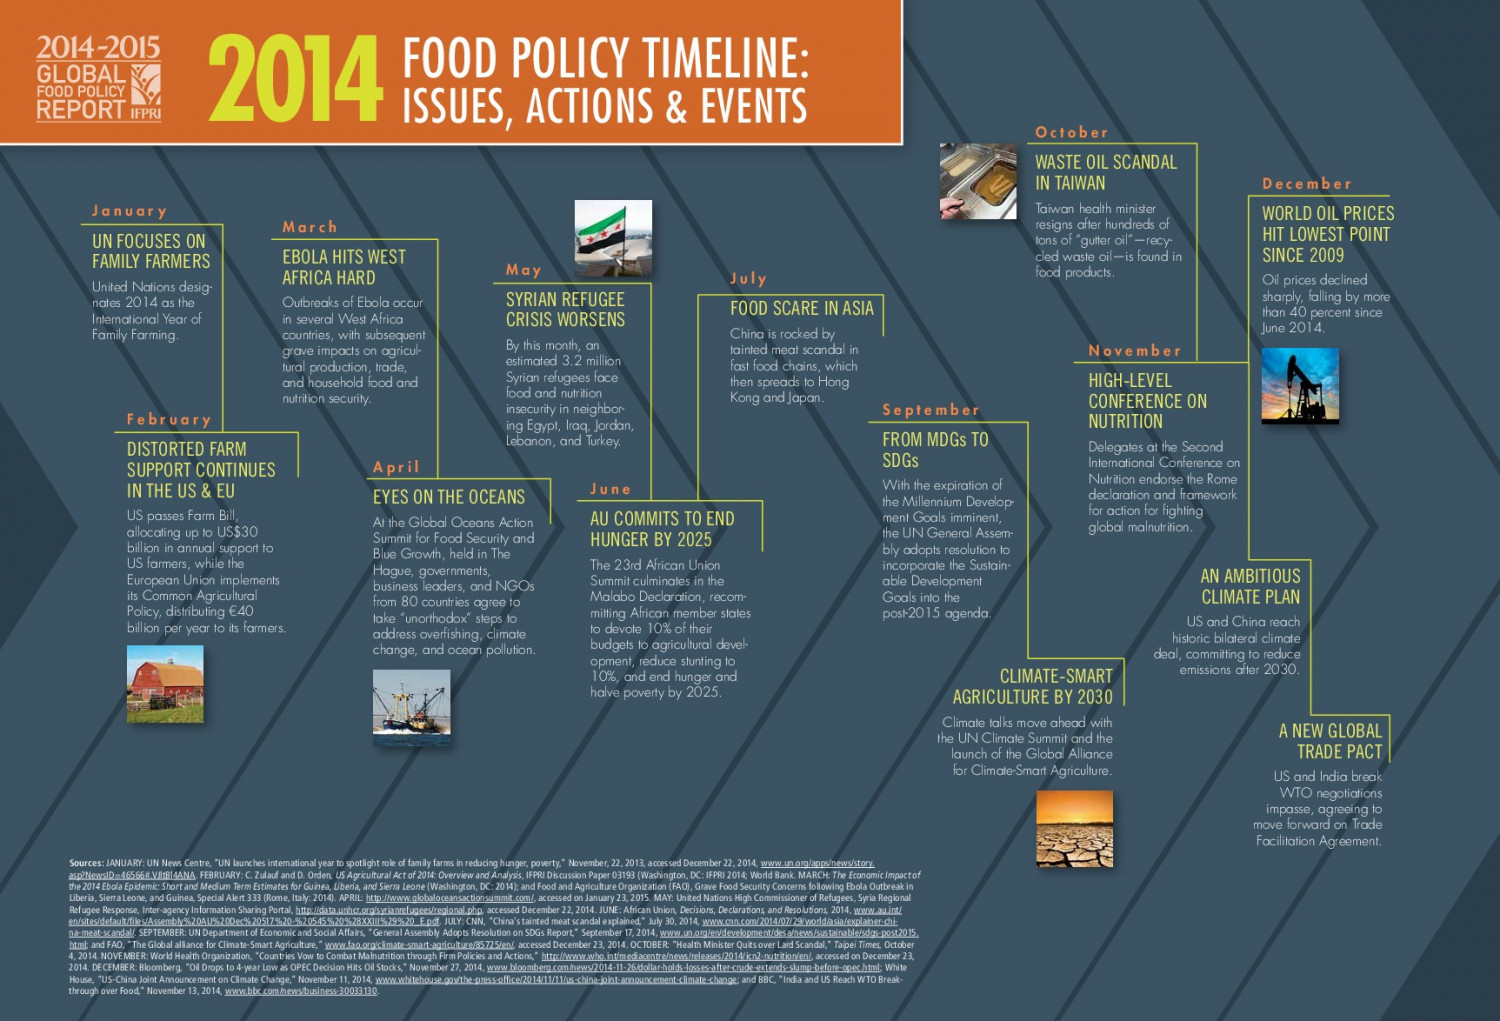 2014 Food Policy Timeline: Issues, Actions, & Events | Visual ly